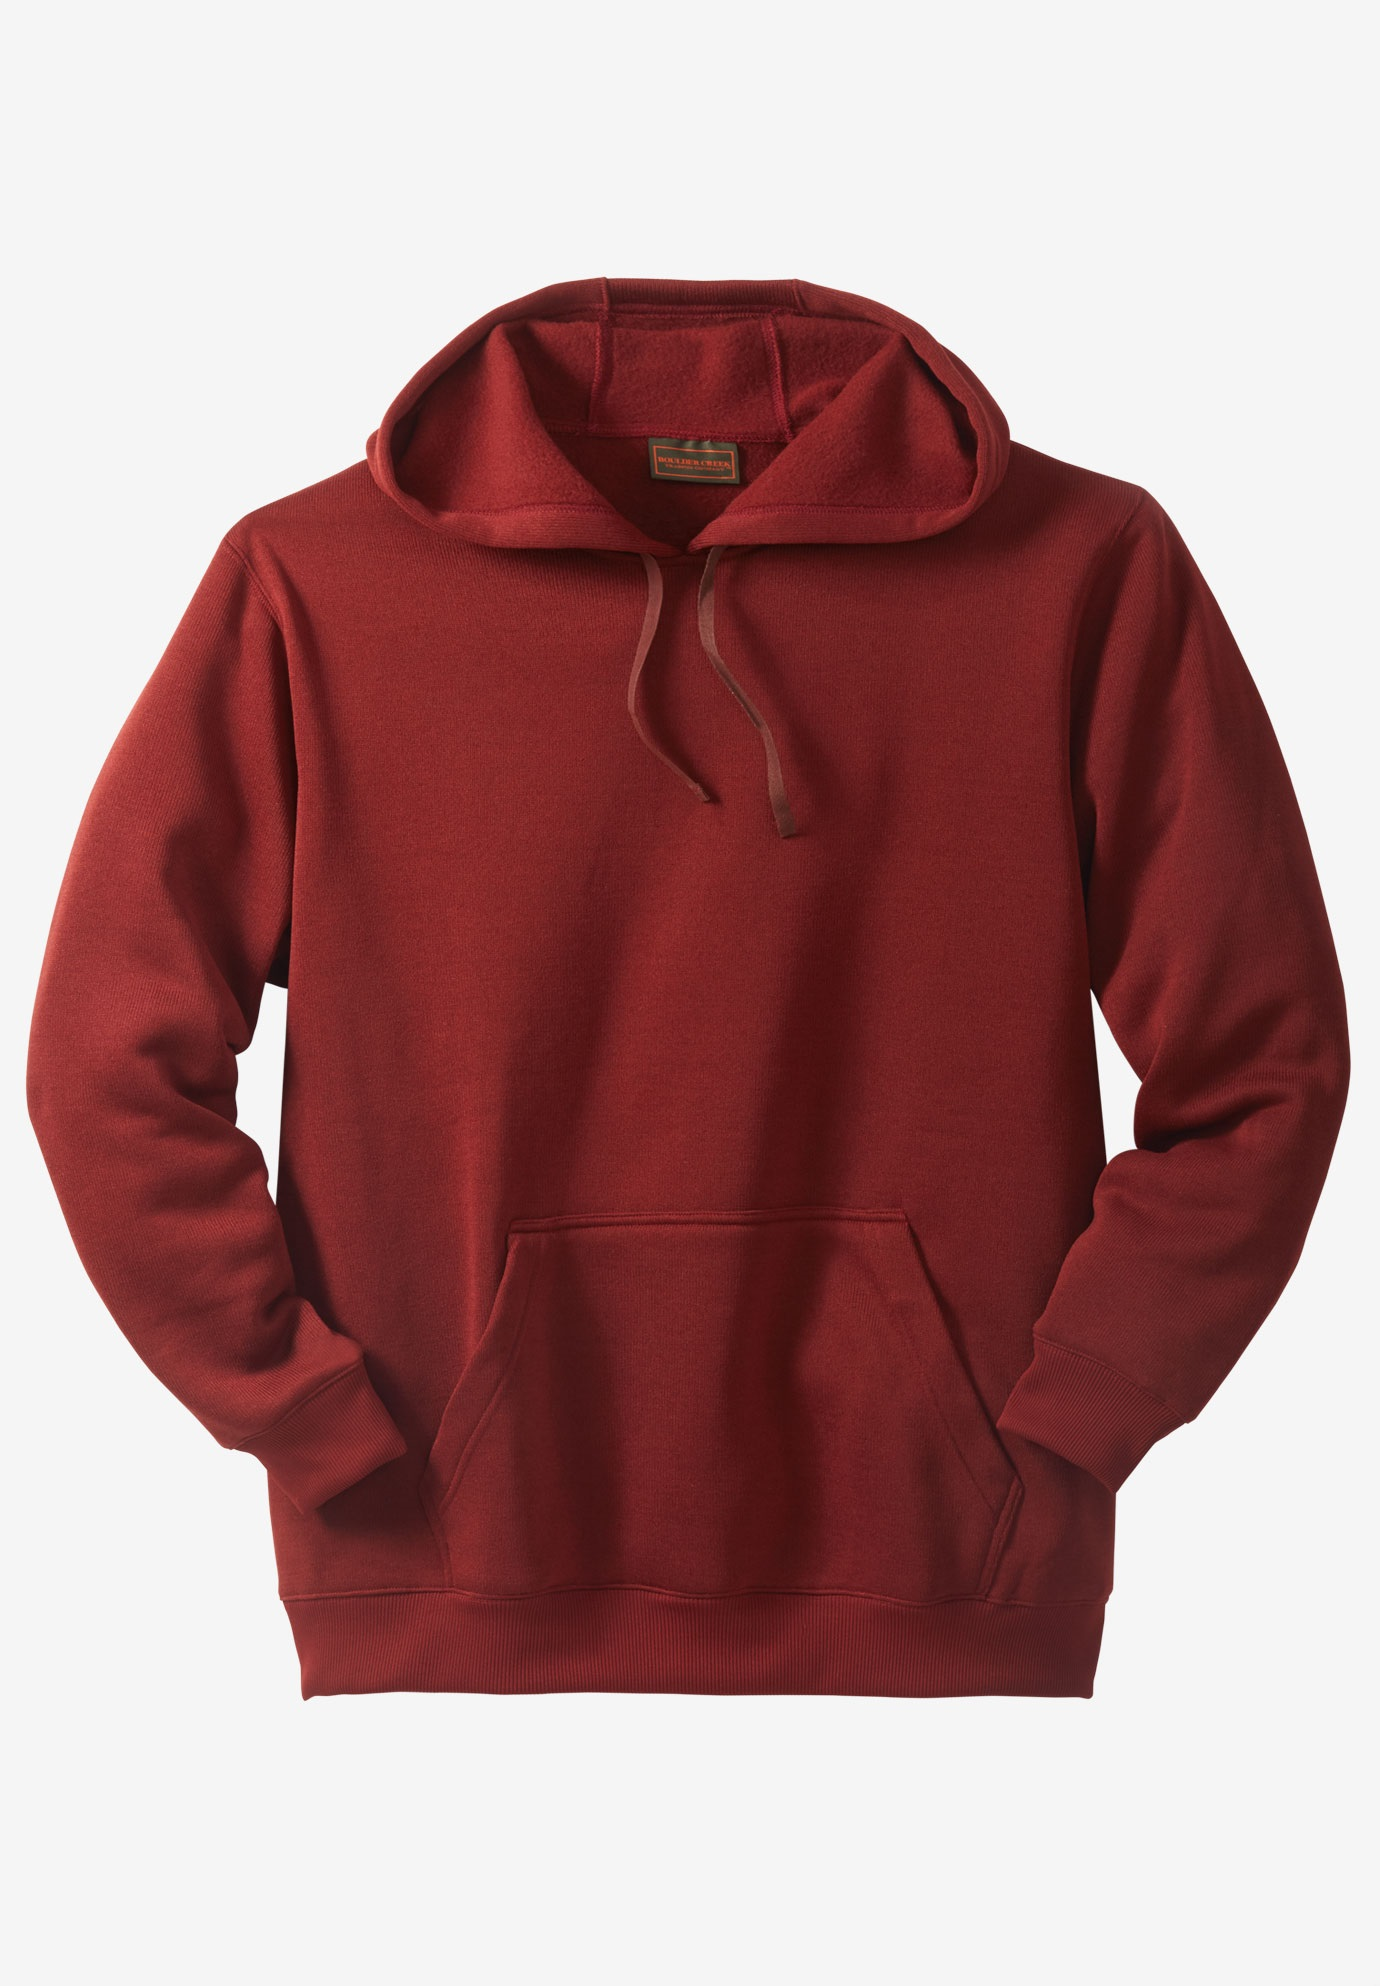 Warmth Without Weight Hoodie by Boulder Creek® ,